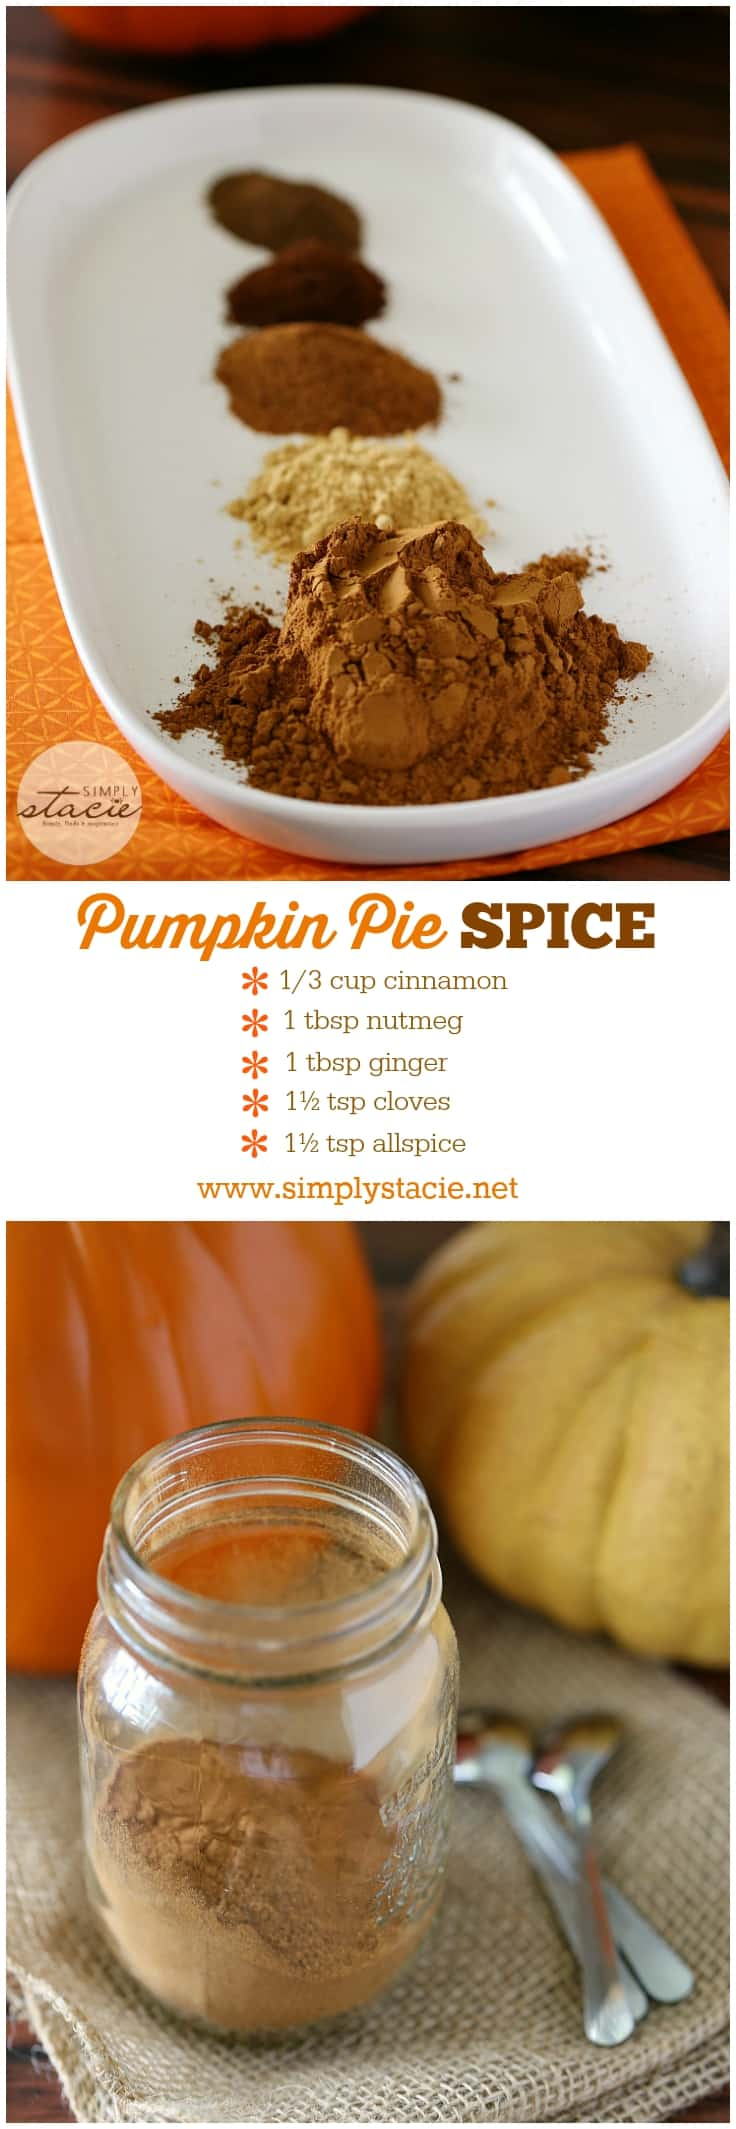 Homemade Pumpkin Pie Spice - Simply Stacie